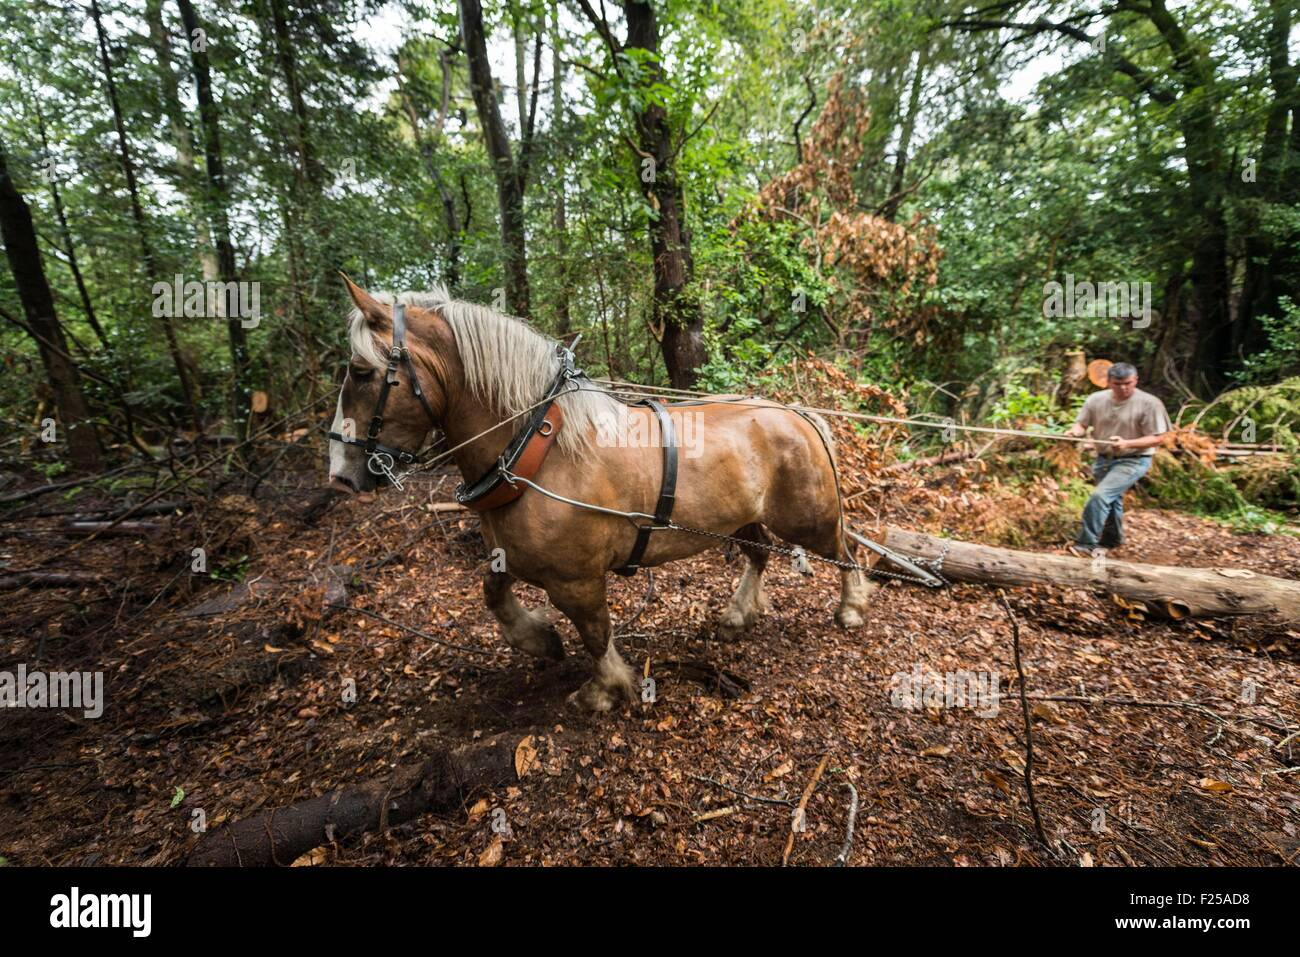 France, Finistere, Plougastel Daoulas, hauling by horse on the natural site of Kererault - Stock Image